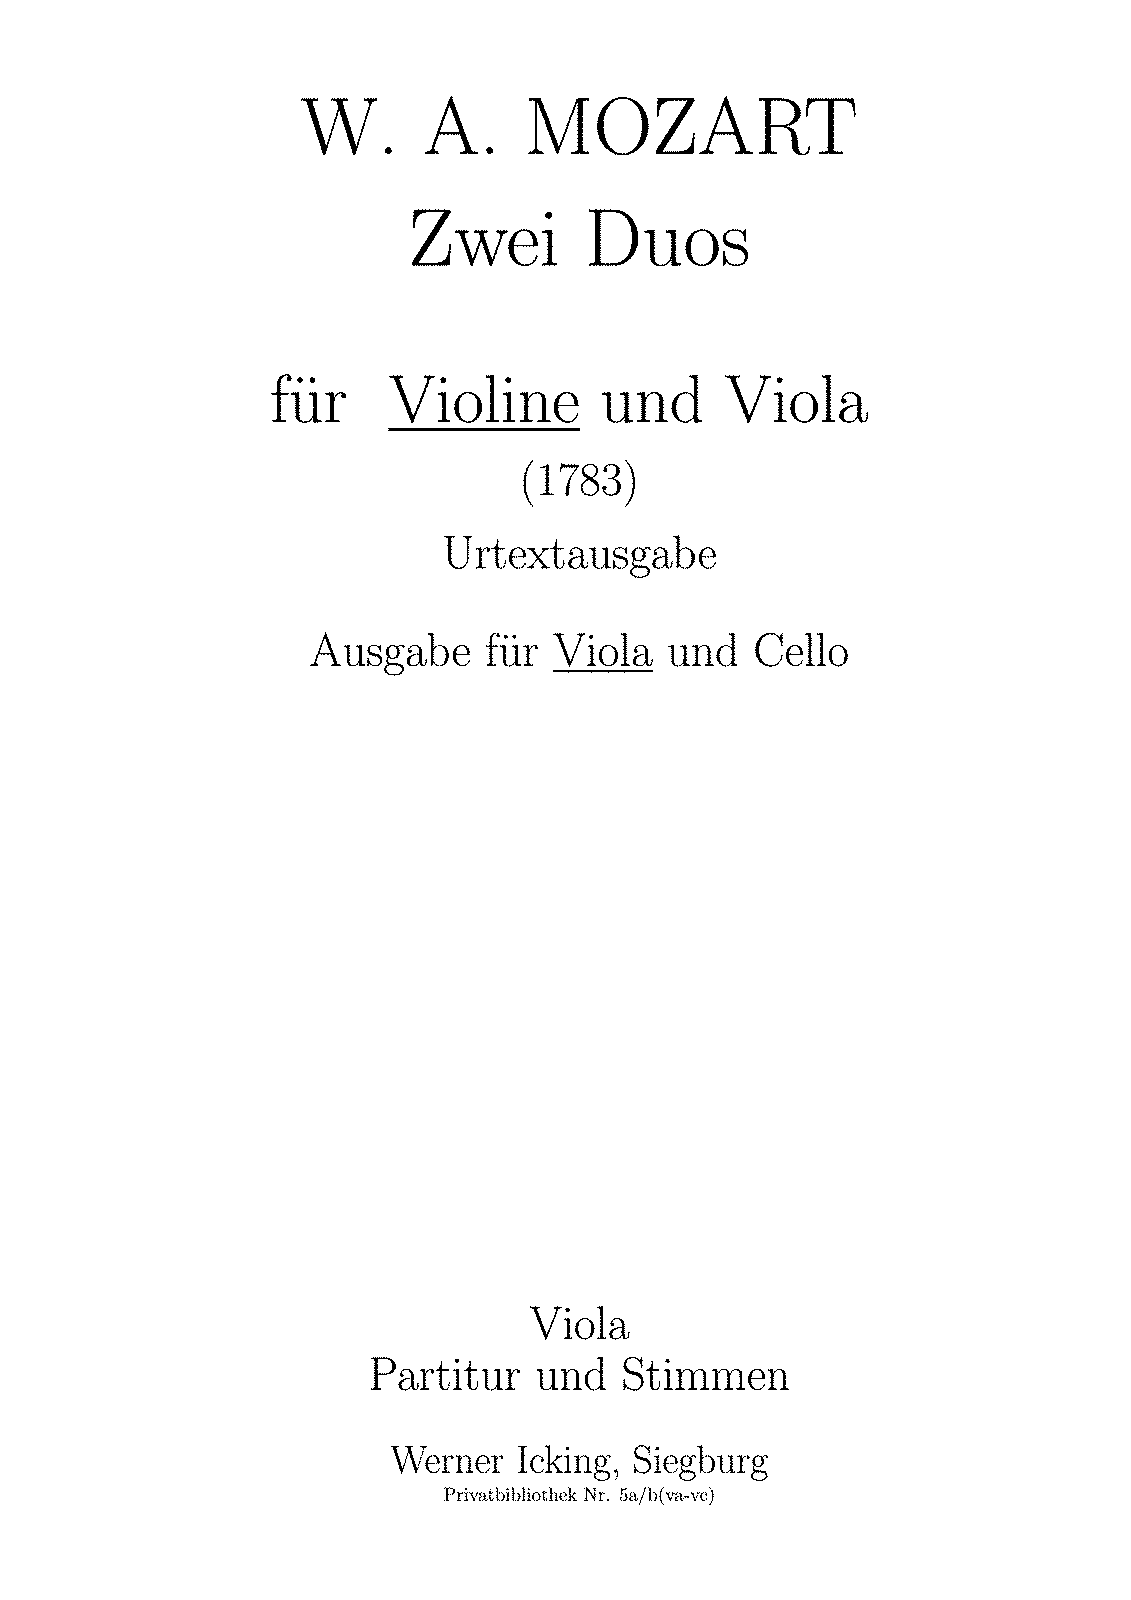 PMLP54153-Mozart - Duets 423-4 - Viola and Cello.pdf